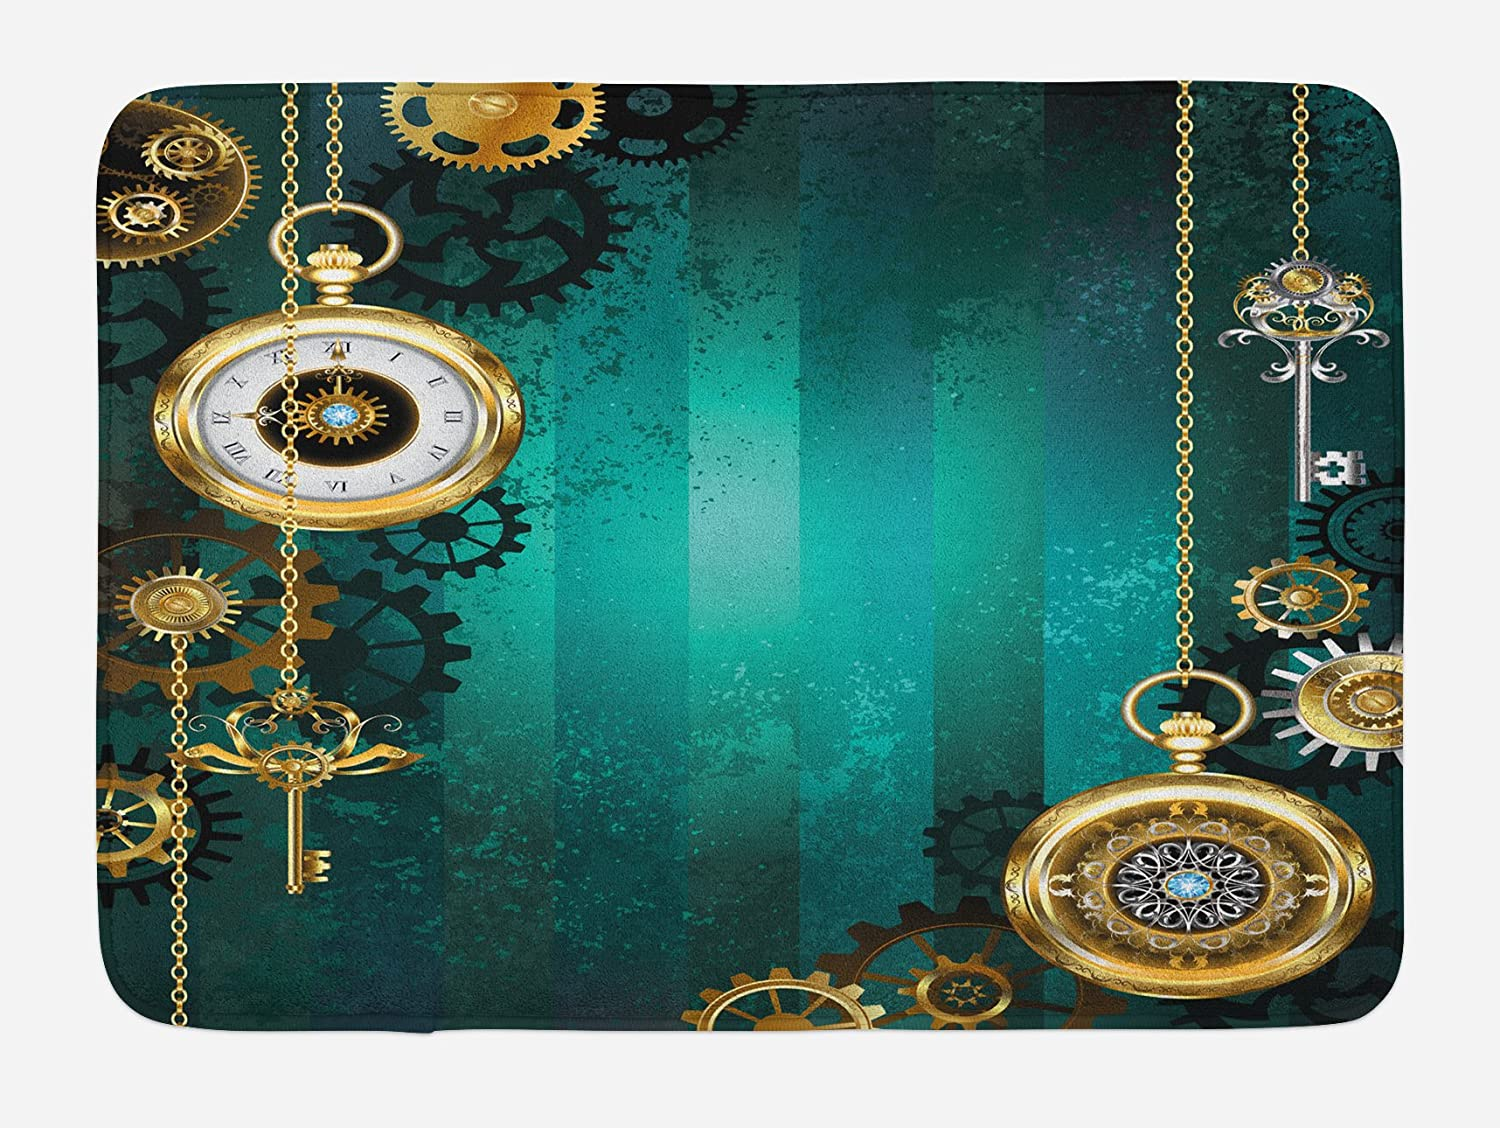 Ambesonne Industrial Bath Mat, Antique Items Watches Keys and Chains with  Steampunk Influences Illustration, Plush Bathroom Decor Mat with Non Slip